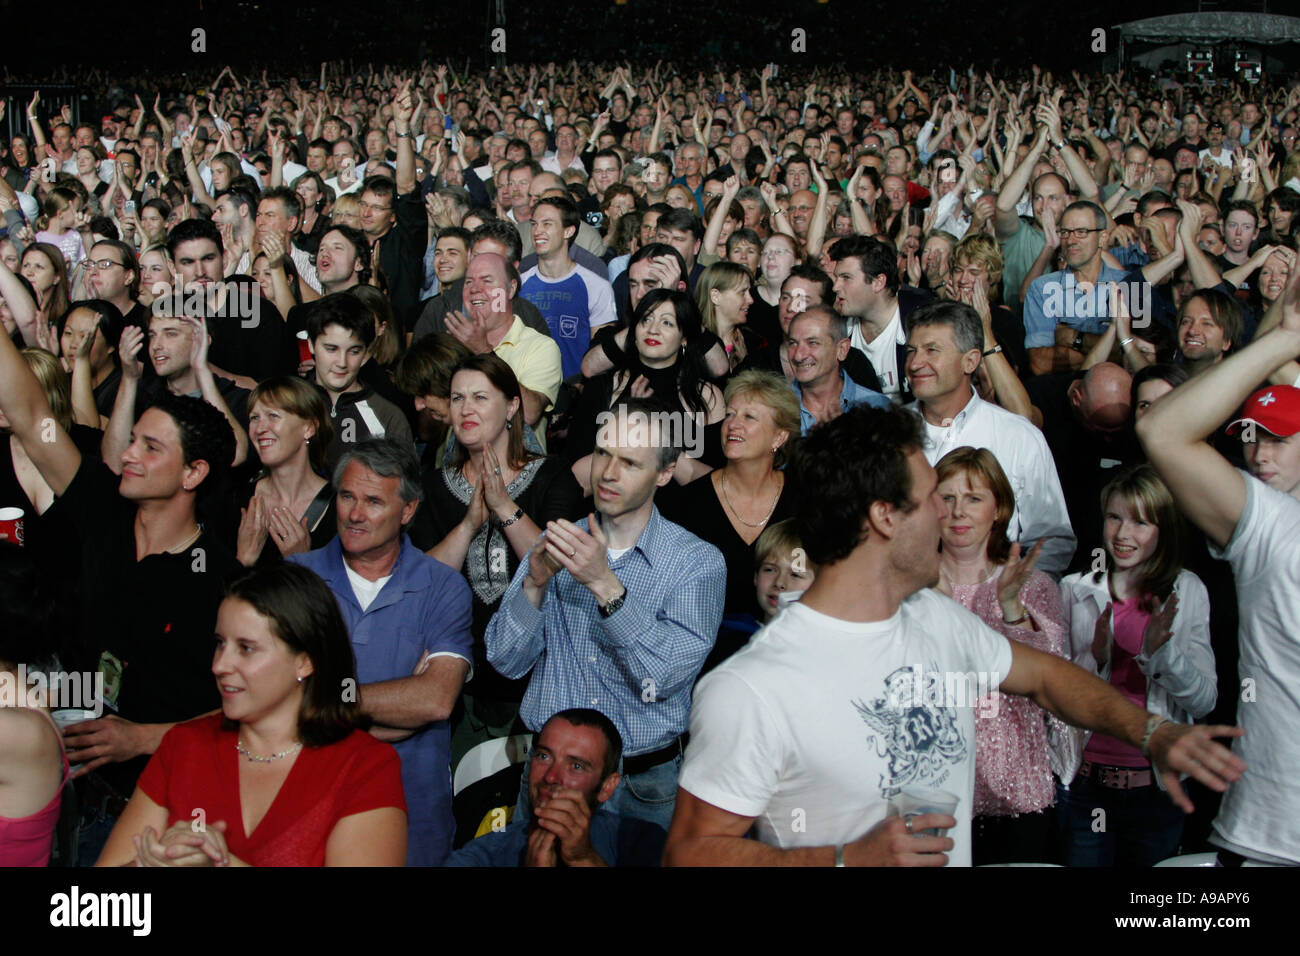 Fans celebrate the beginning of the Rolling Stones concert in Sydney April 2006 - Stock Image